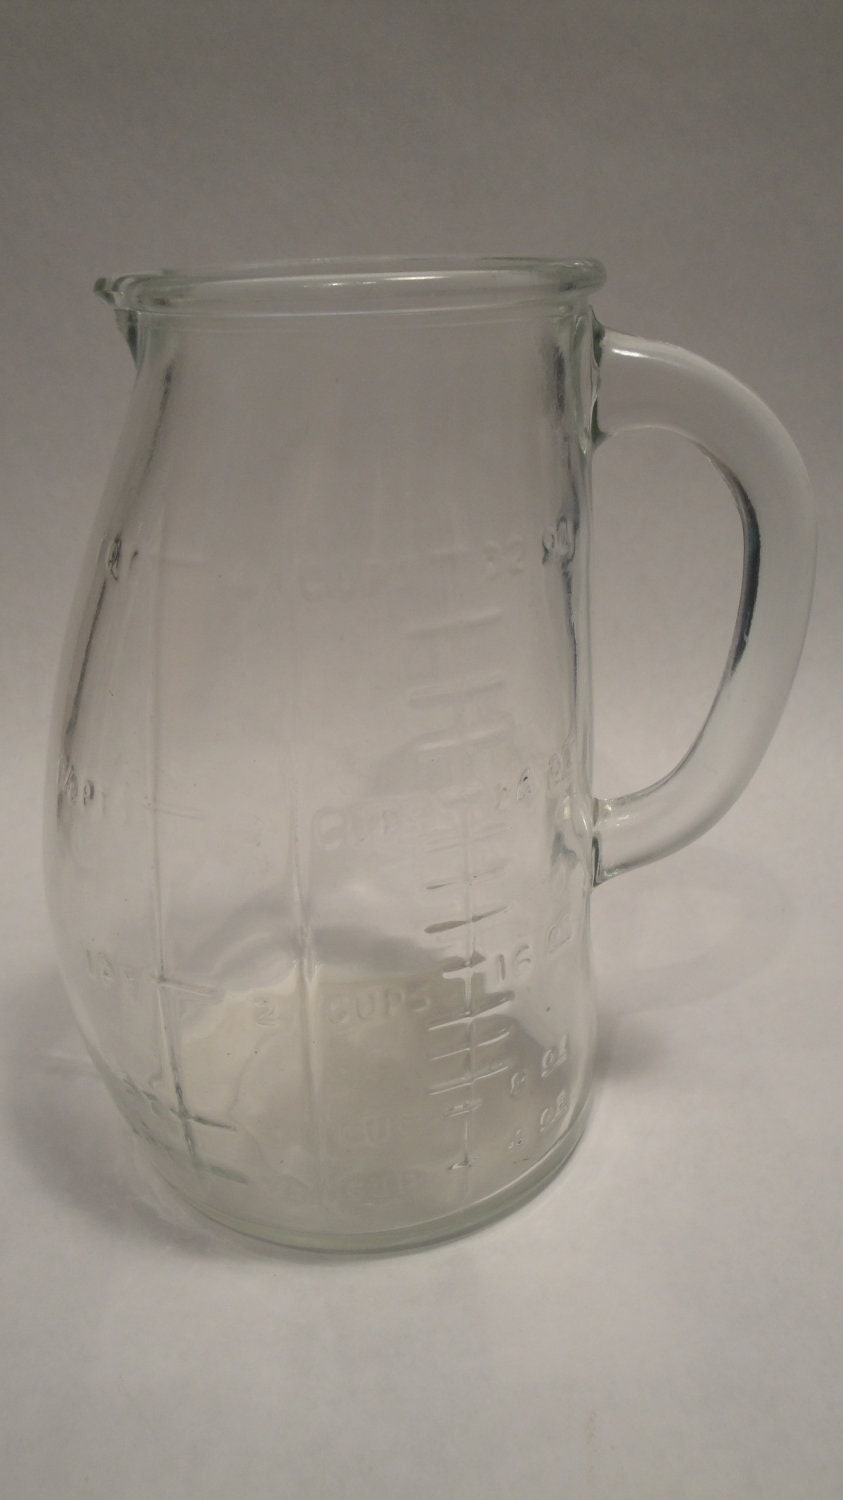 Quart Pitcher Large Glass Measuring Cup Curved Leaning